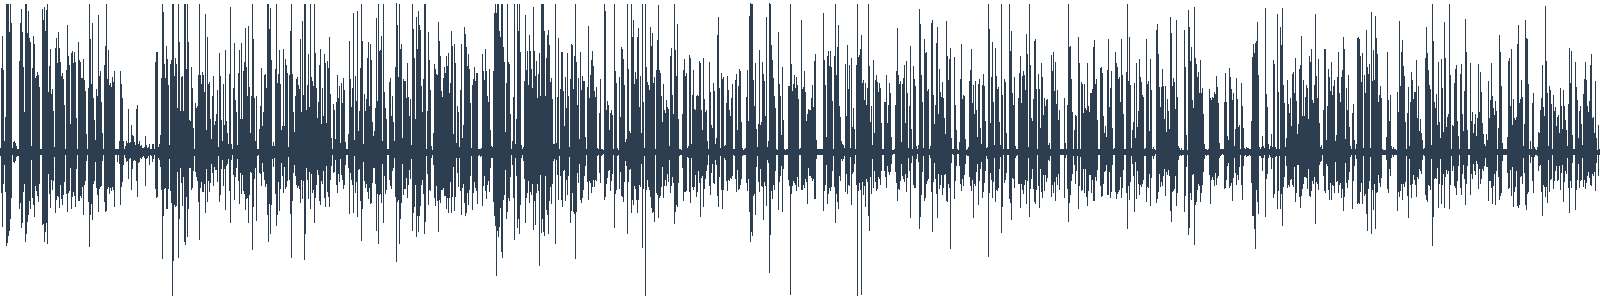 4. adventná nedeľa waveform